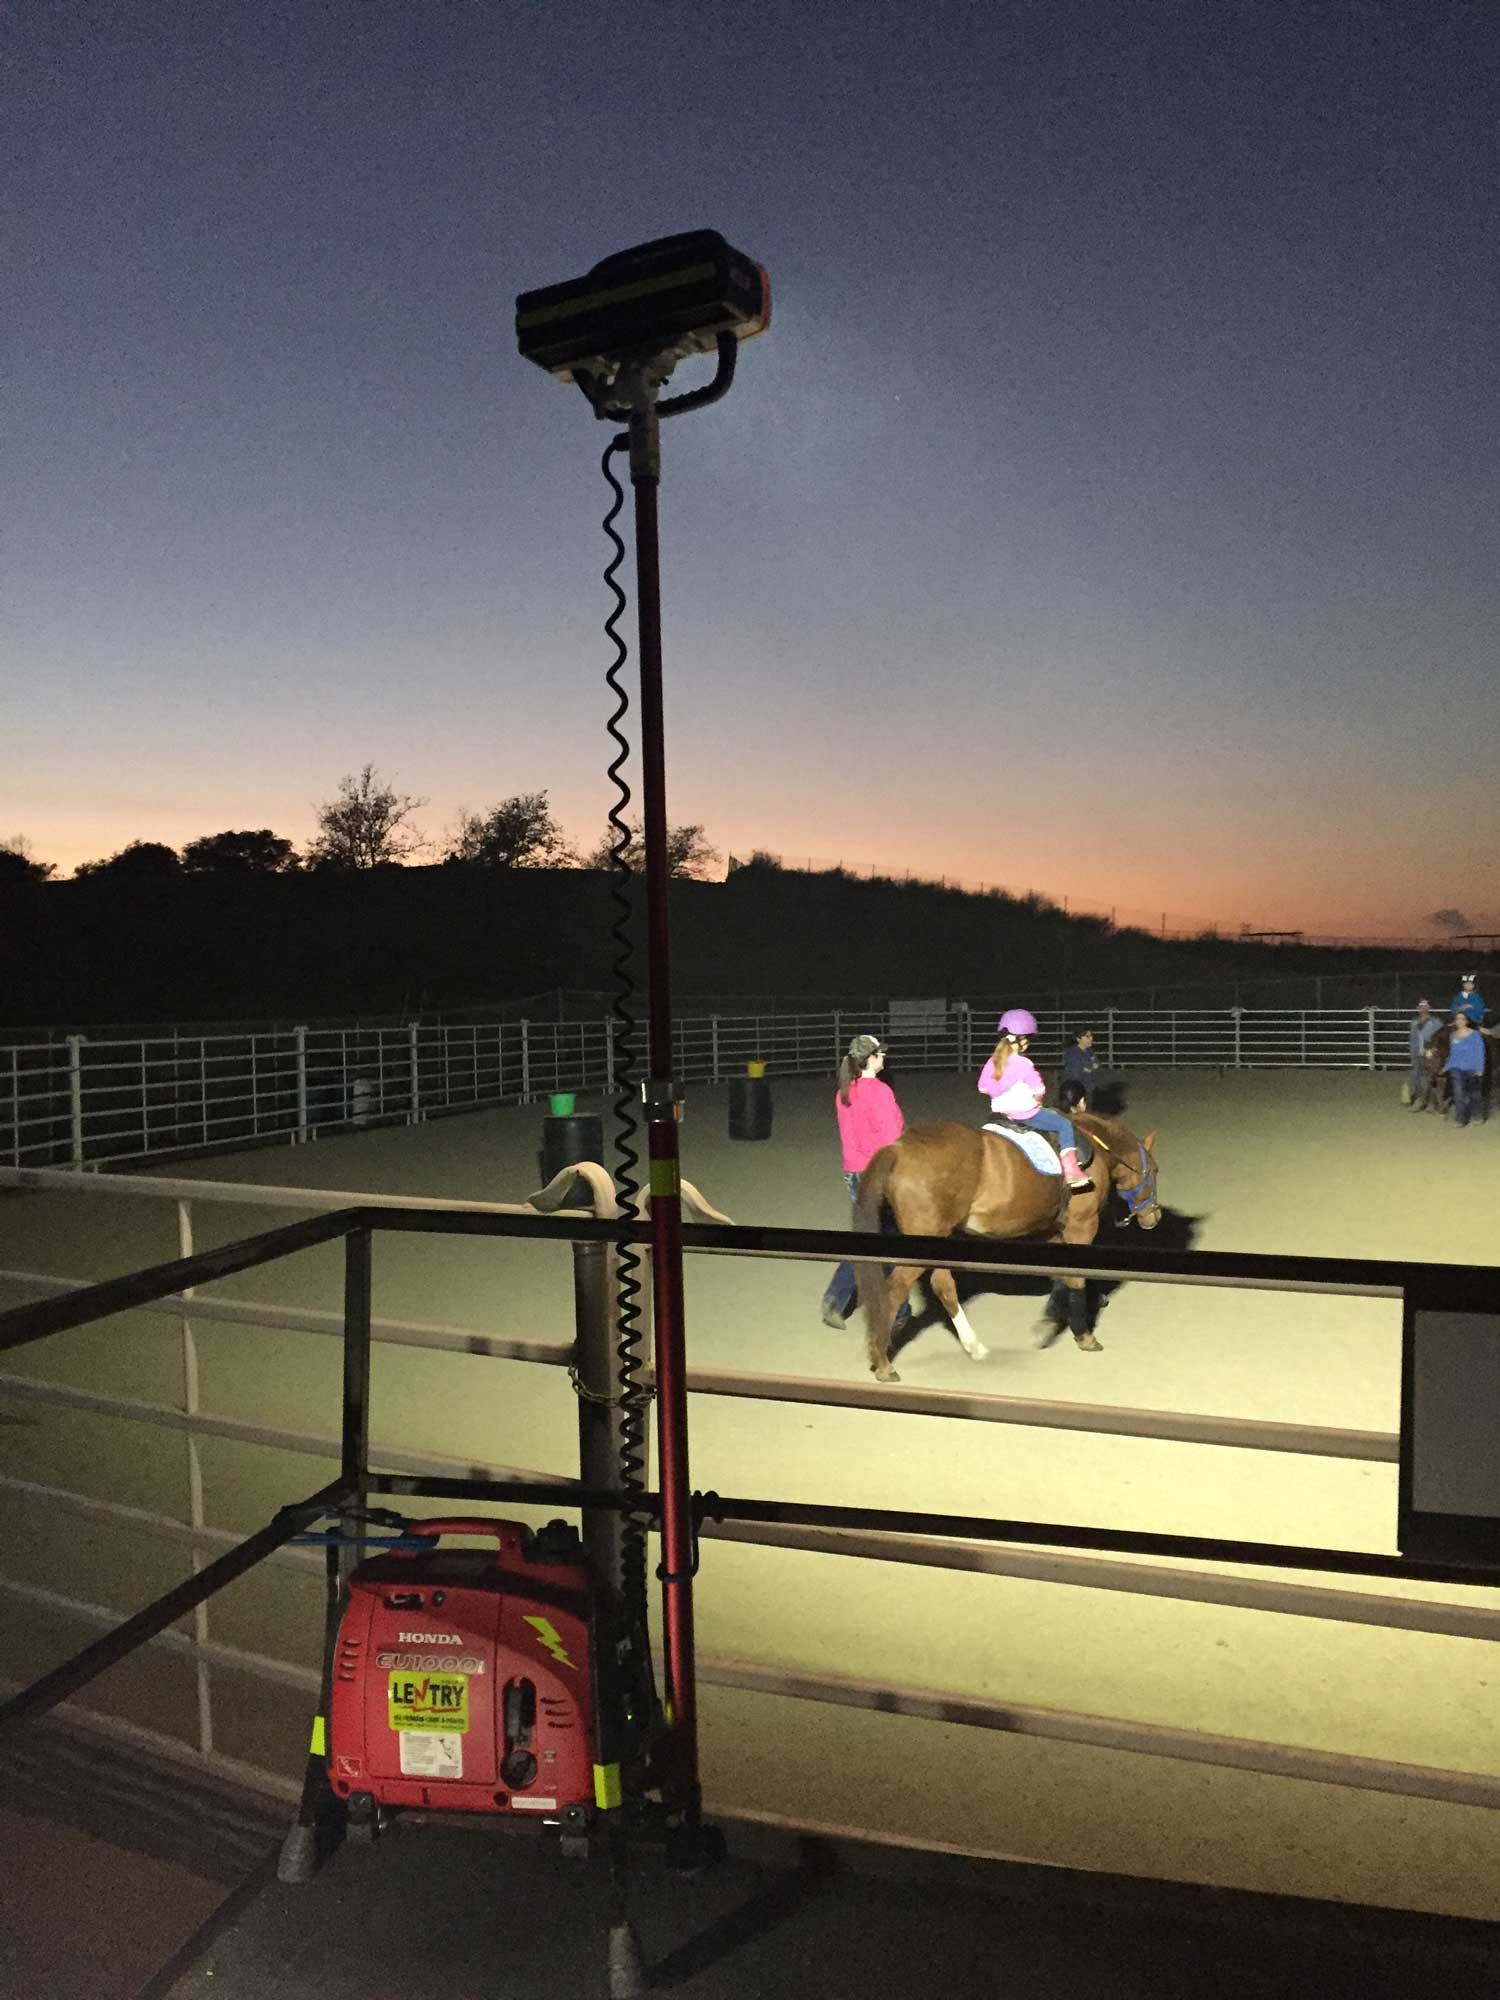 riding arena lighting. lighting applications · portable led lentry model 1starx lights the arena of theutic riding center